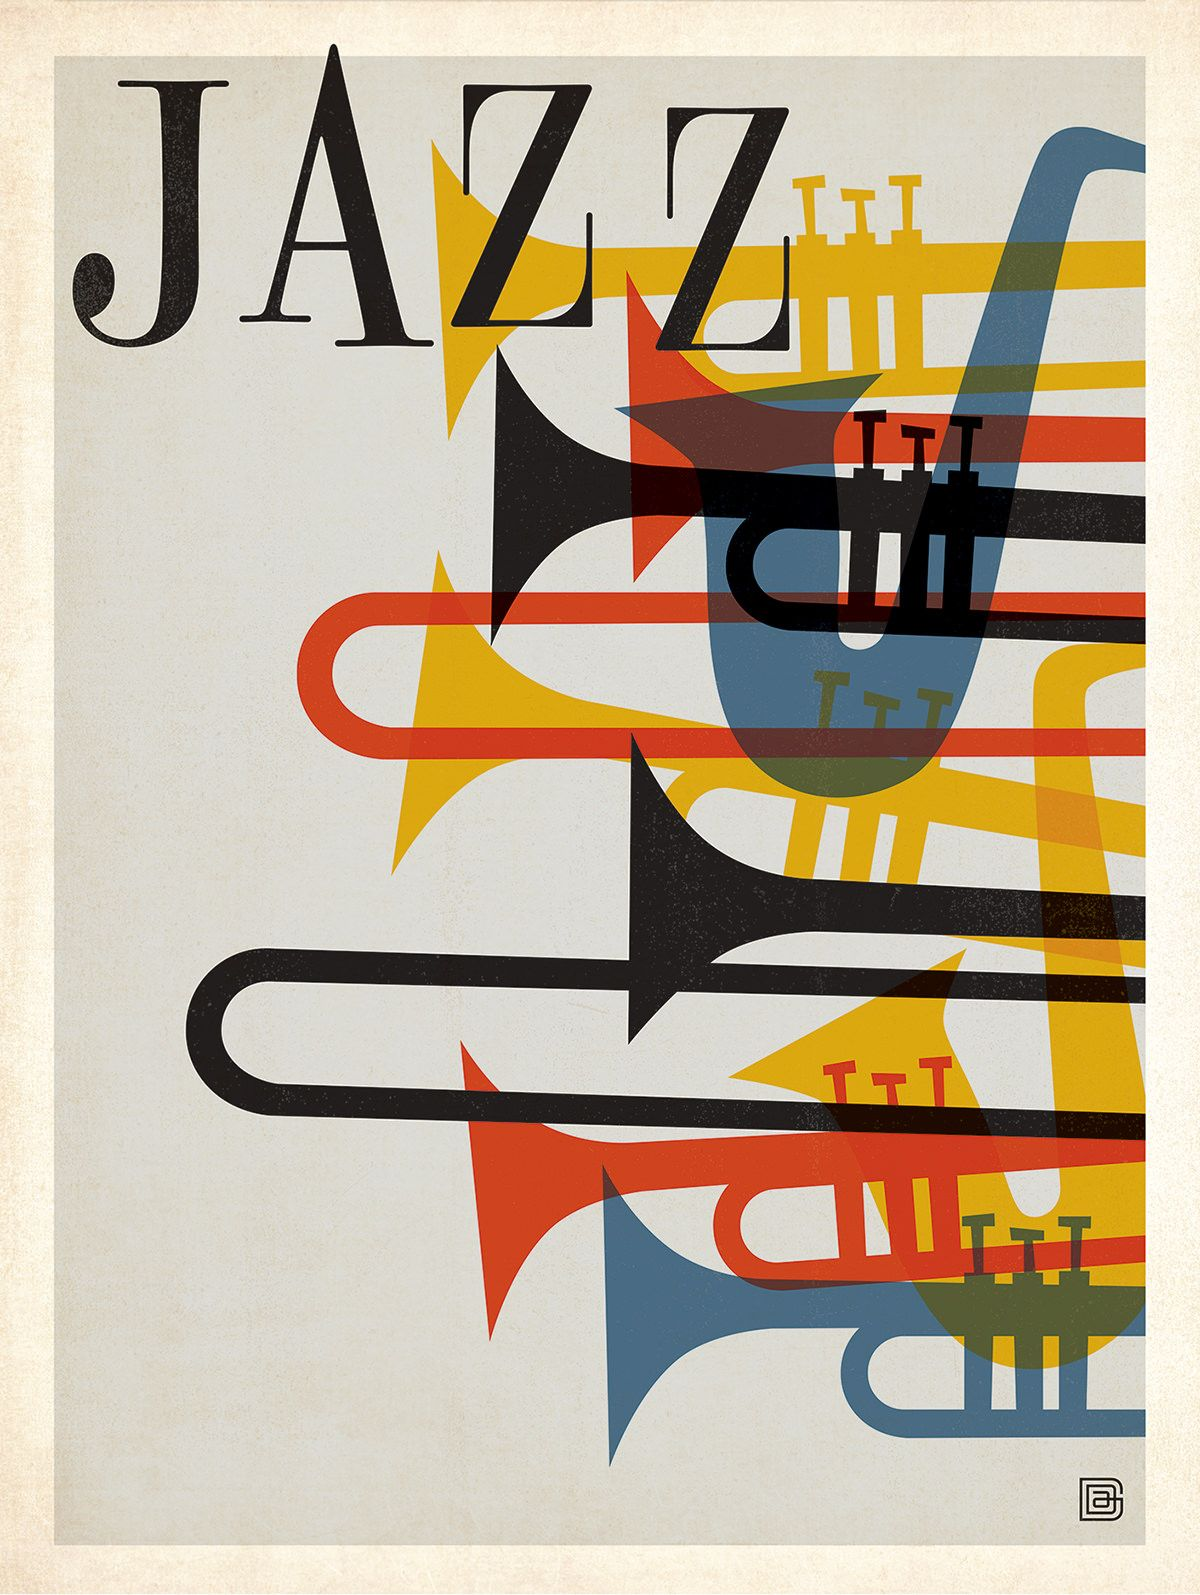 mid century jazz poster inspired by classic album cover. Black Bedroom Furniture Sets. Home Design Ideas